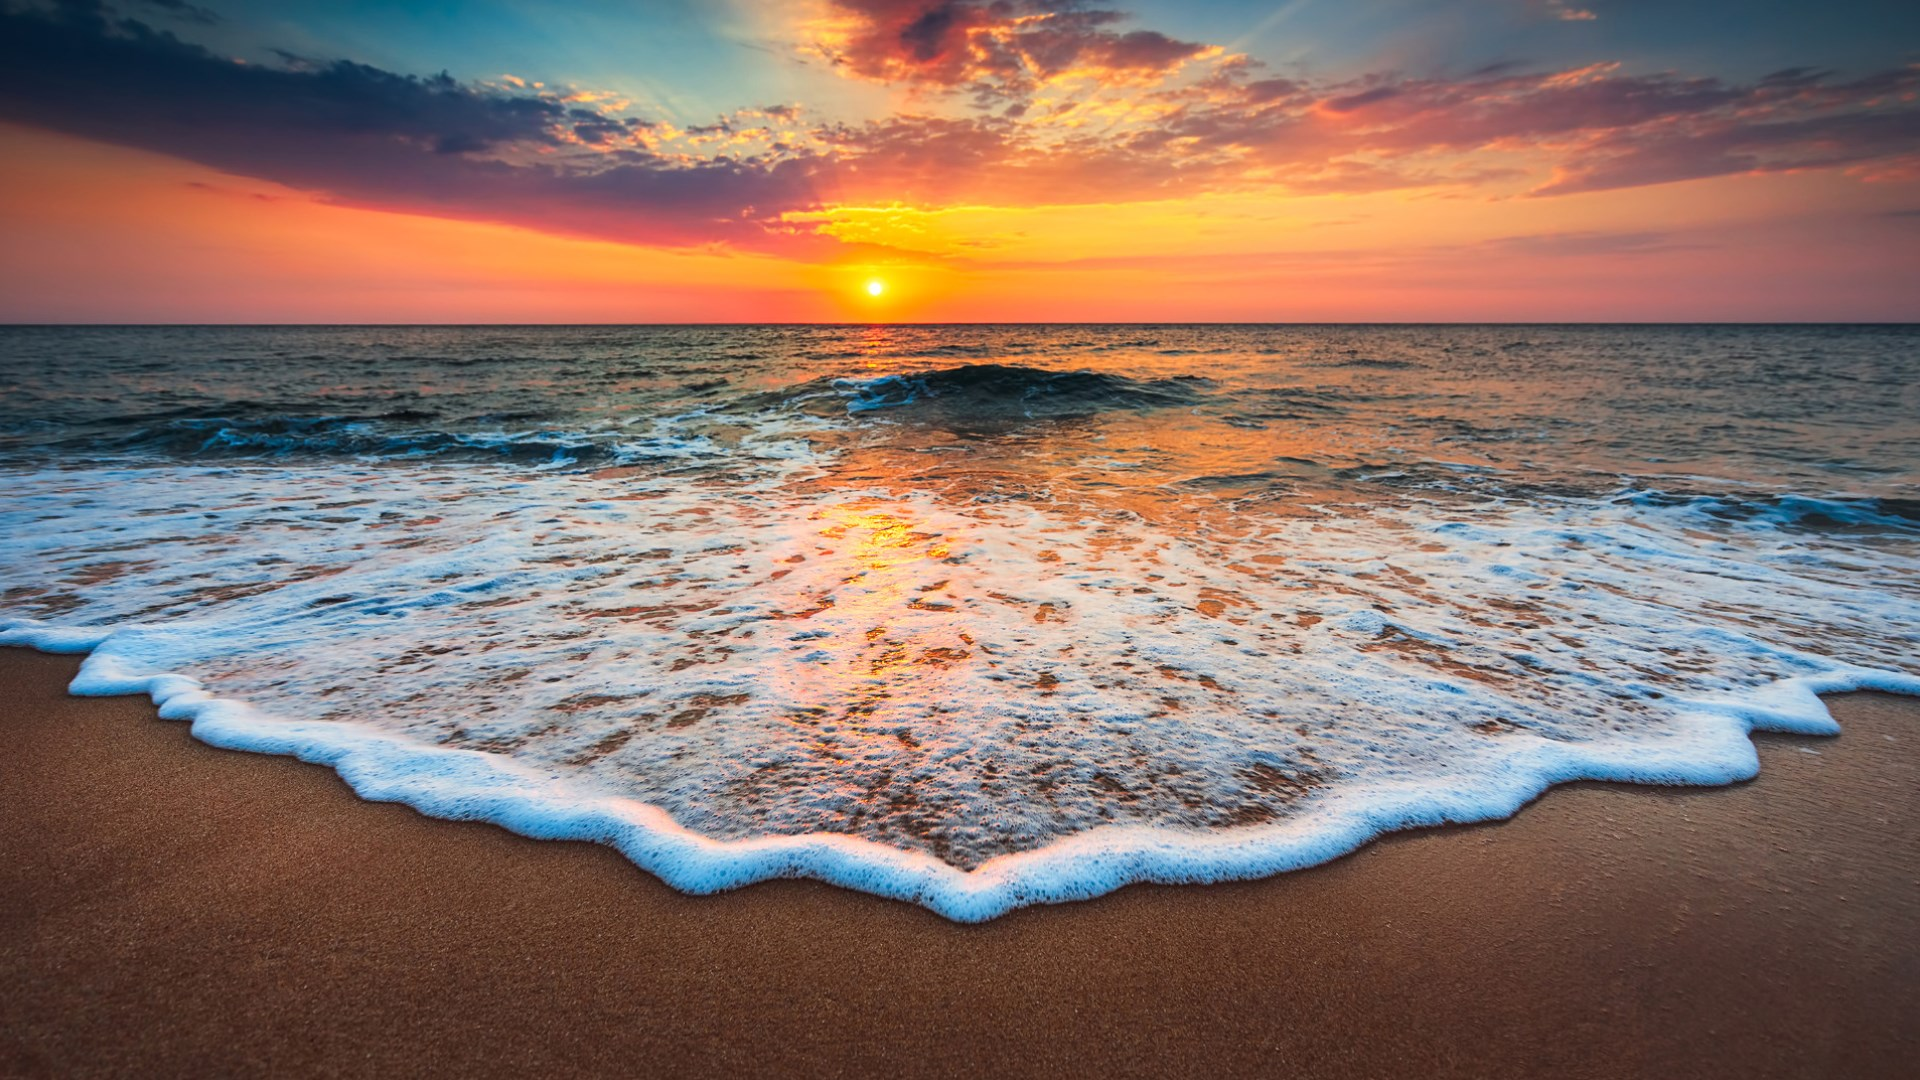 Get Beautiful Sunsets Microsoft Store No photos of people from social media sites if the person has not made the photo visible to the public. get beautiful sunsets microsoft store